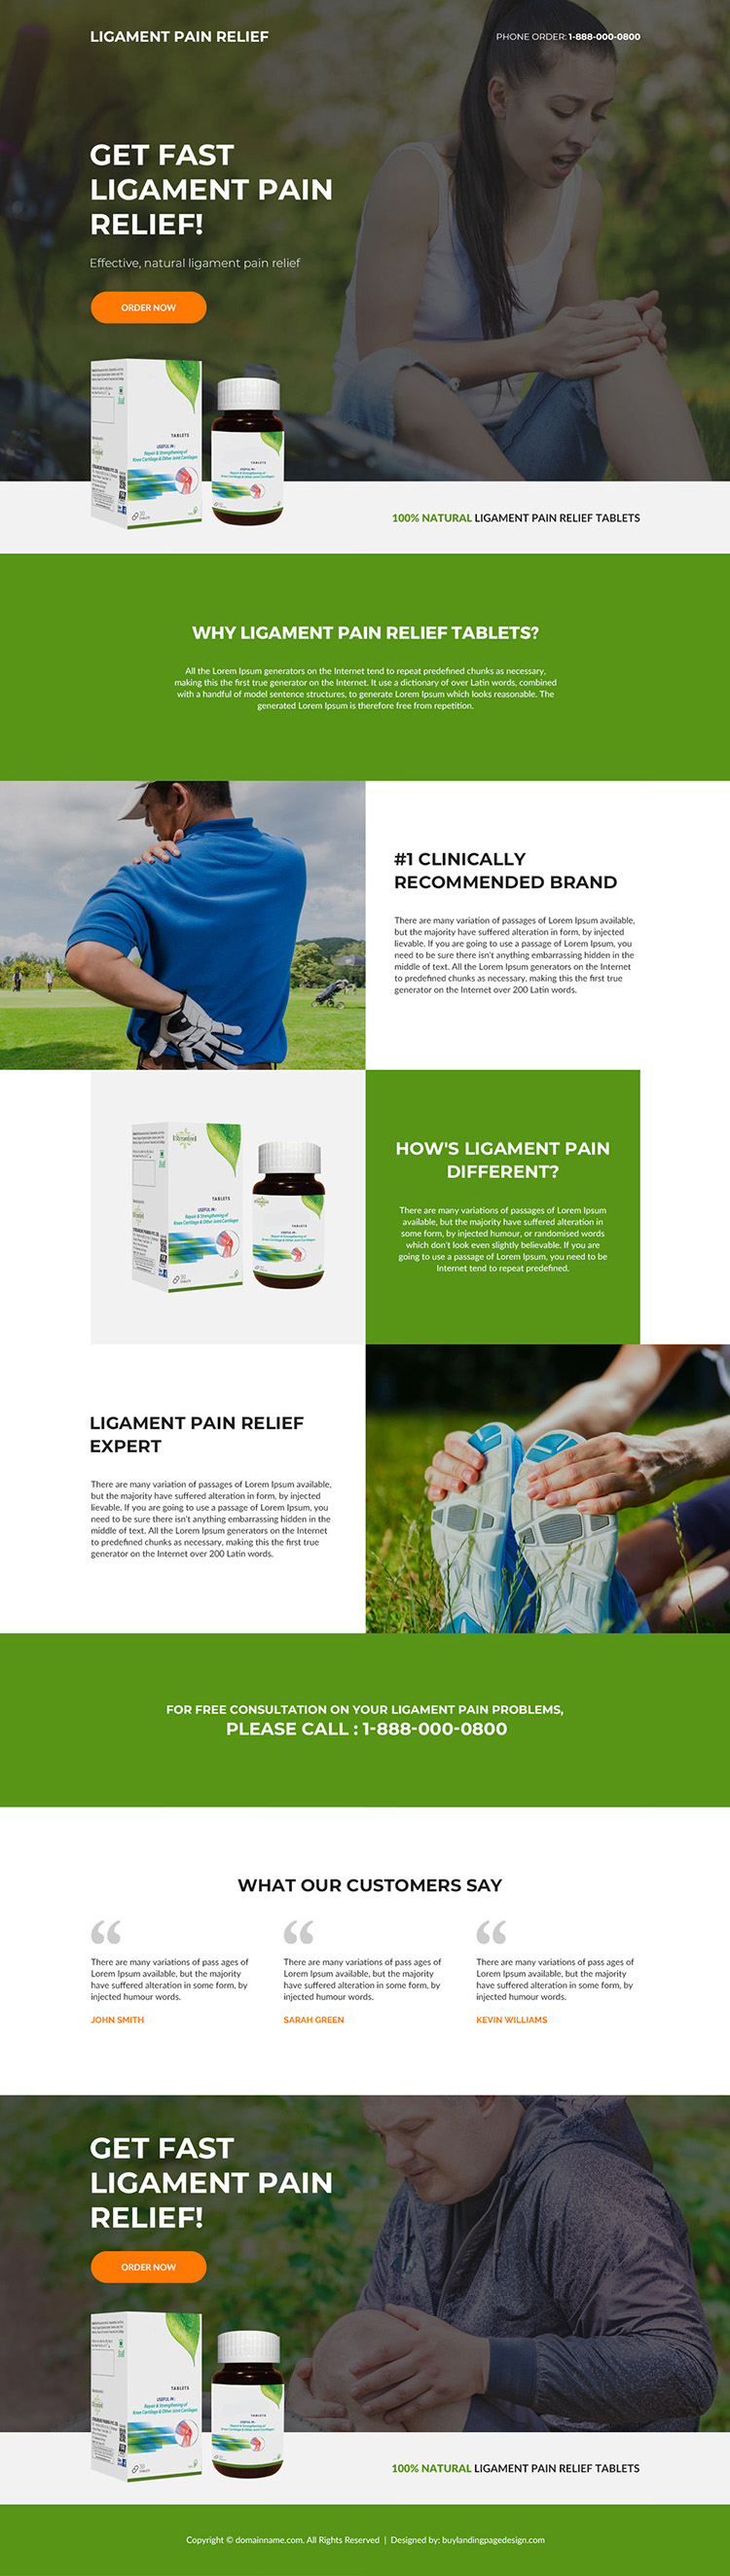 ligament pain relief tablets selling responsive landing page